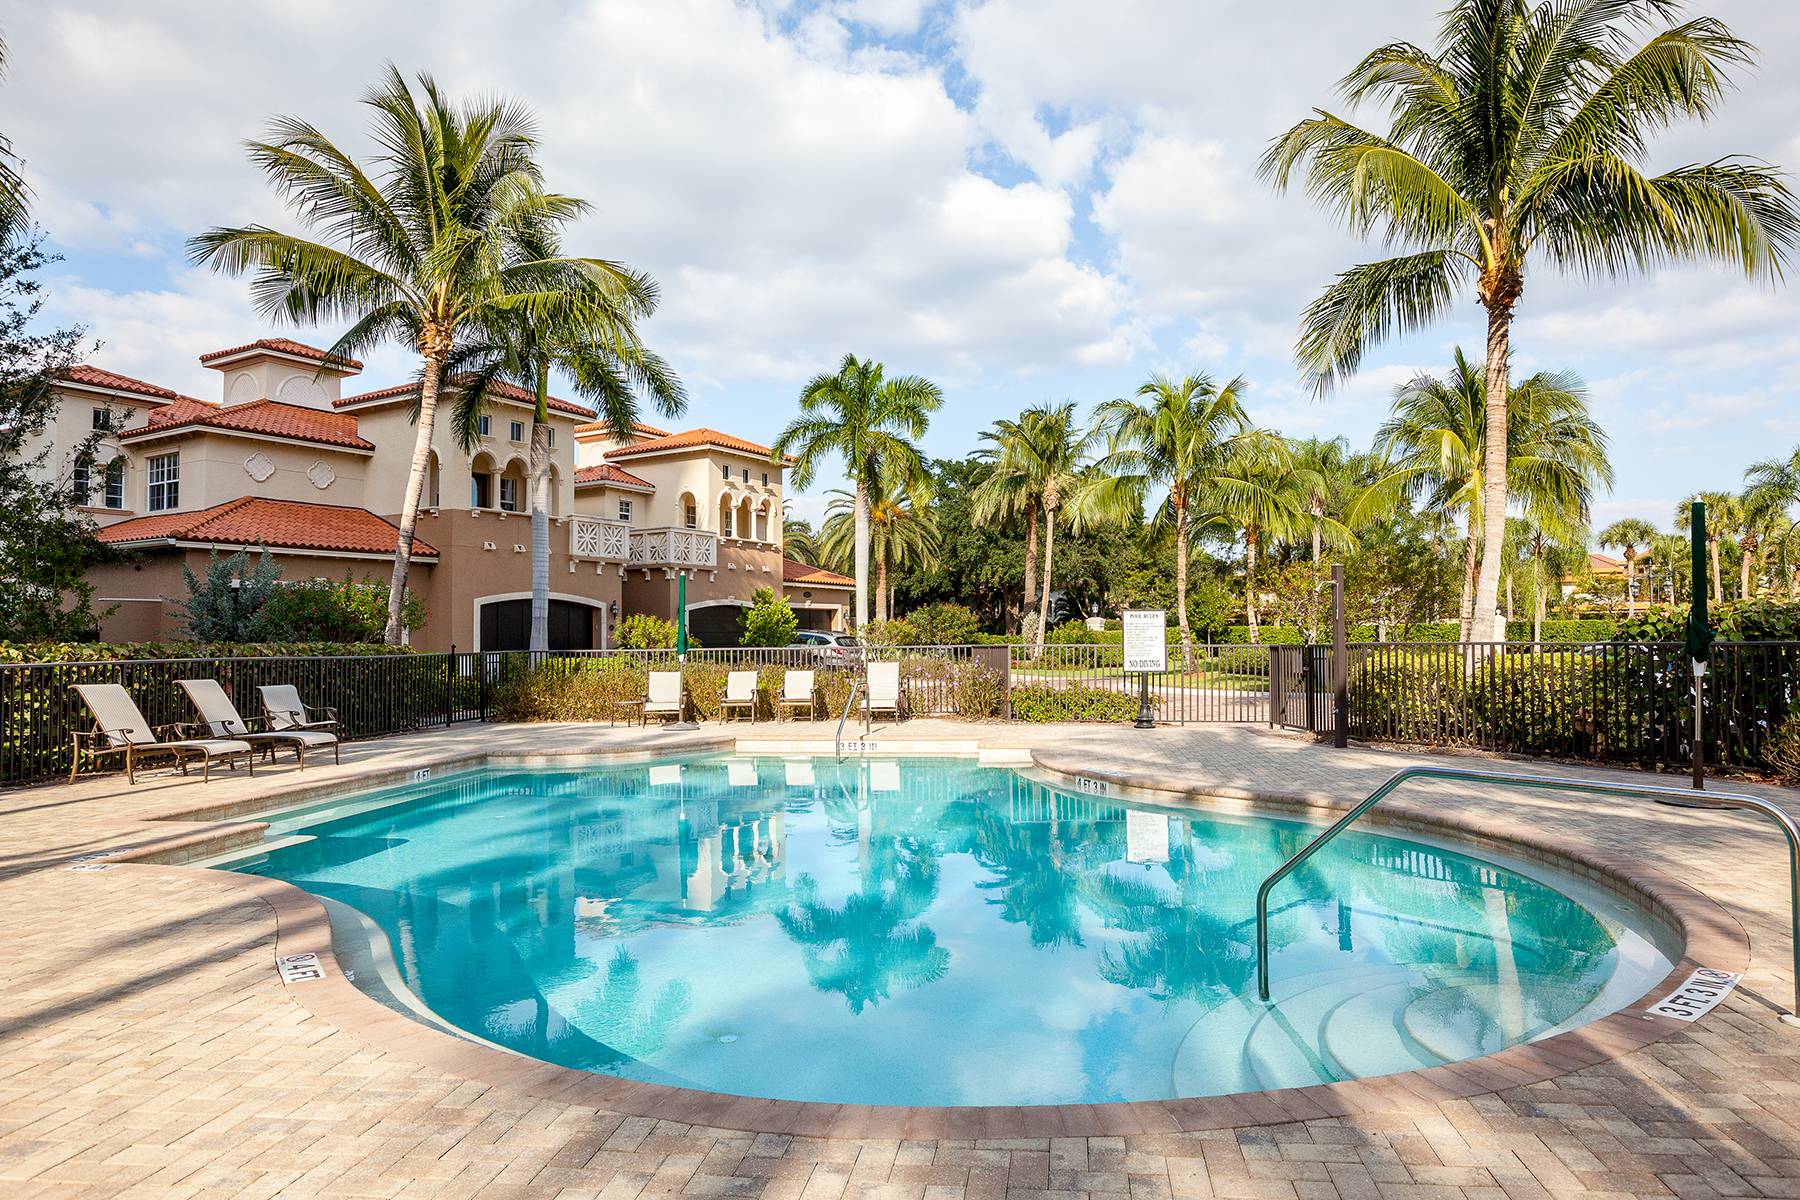 Condominium for Sale at PELICAN BAY - CANNES 6501 Crown Colony Pl 4-201 Naples, Florida, 34108 United States